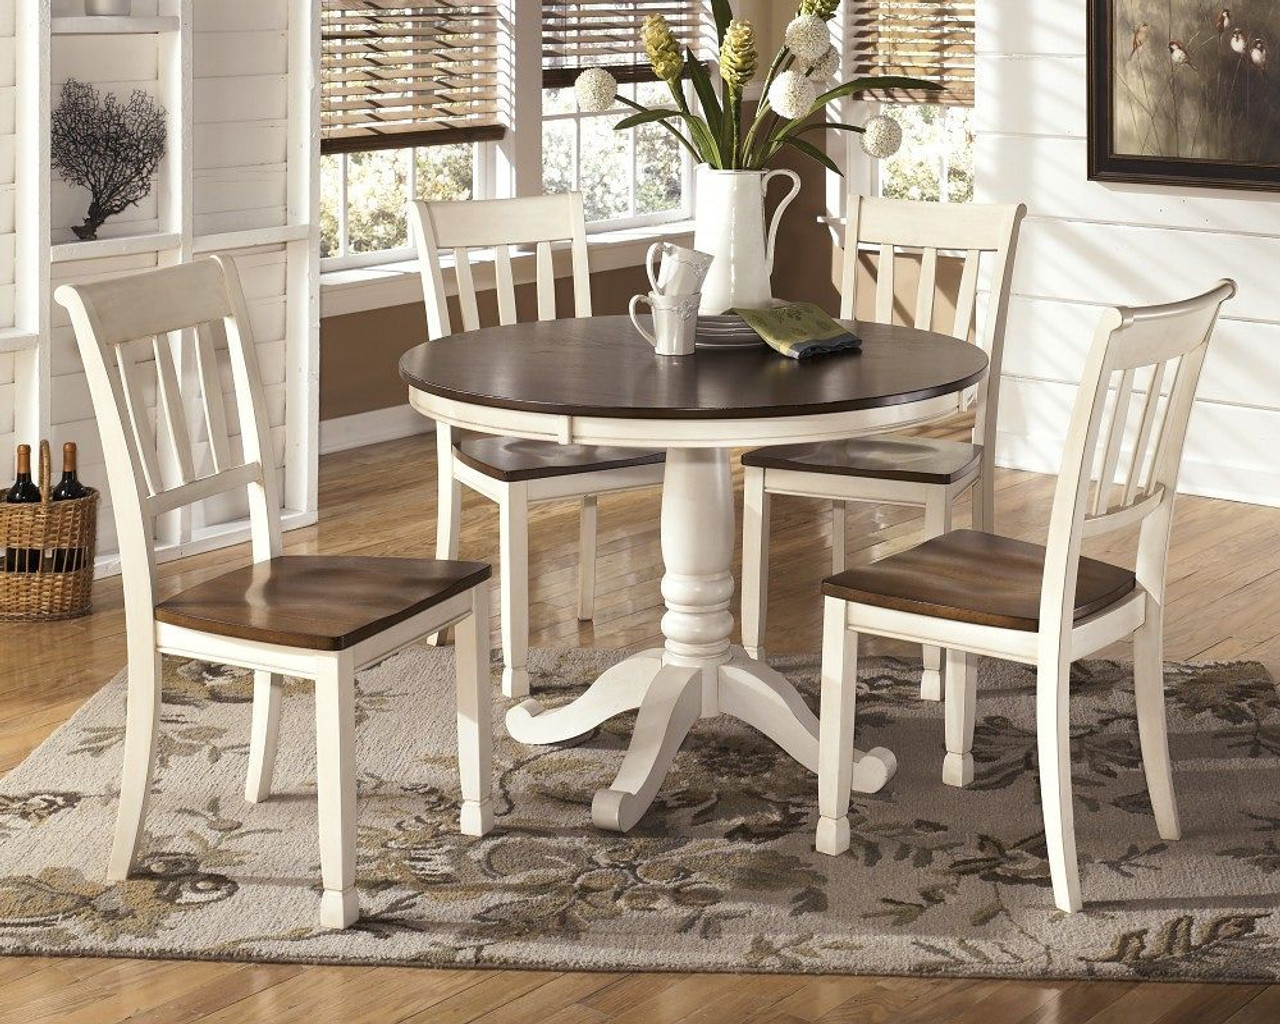 Ashley Whitesburg Brown Cottage White 6 Pc Round Dining Table 4 Side Chairs On Sale At Lee Furniture Of Fayetteville Nc